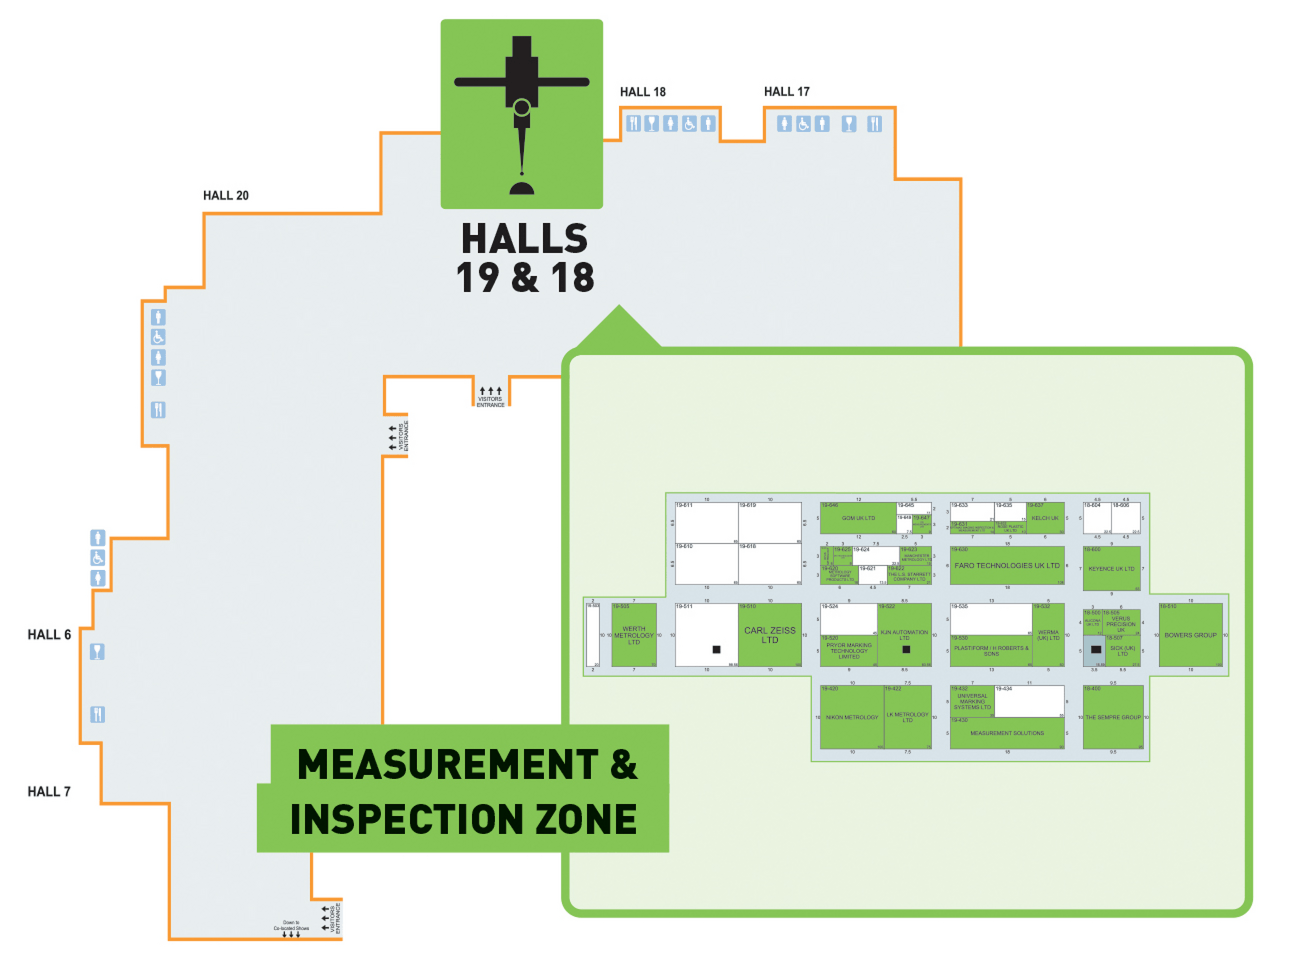 Hall 19 & 17 Measurement Zone